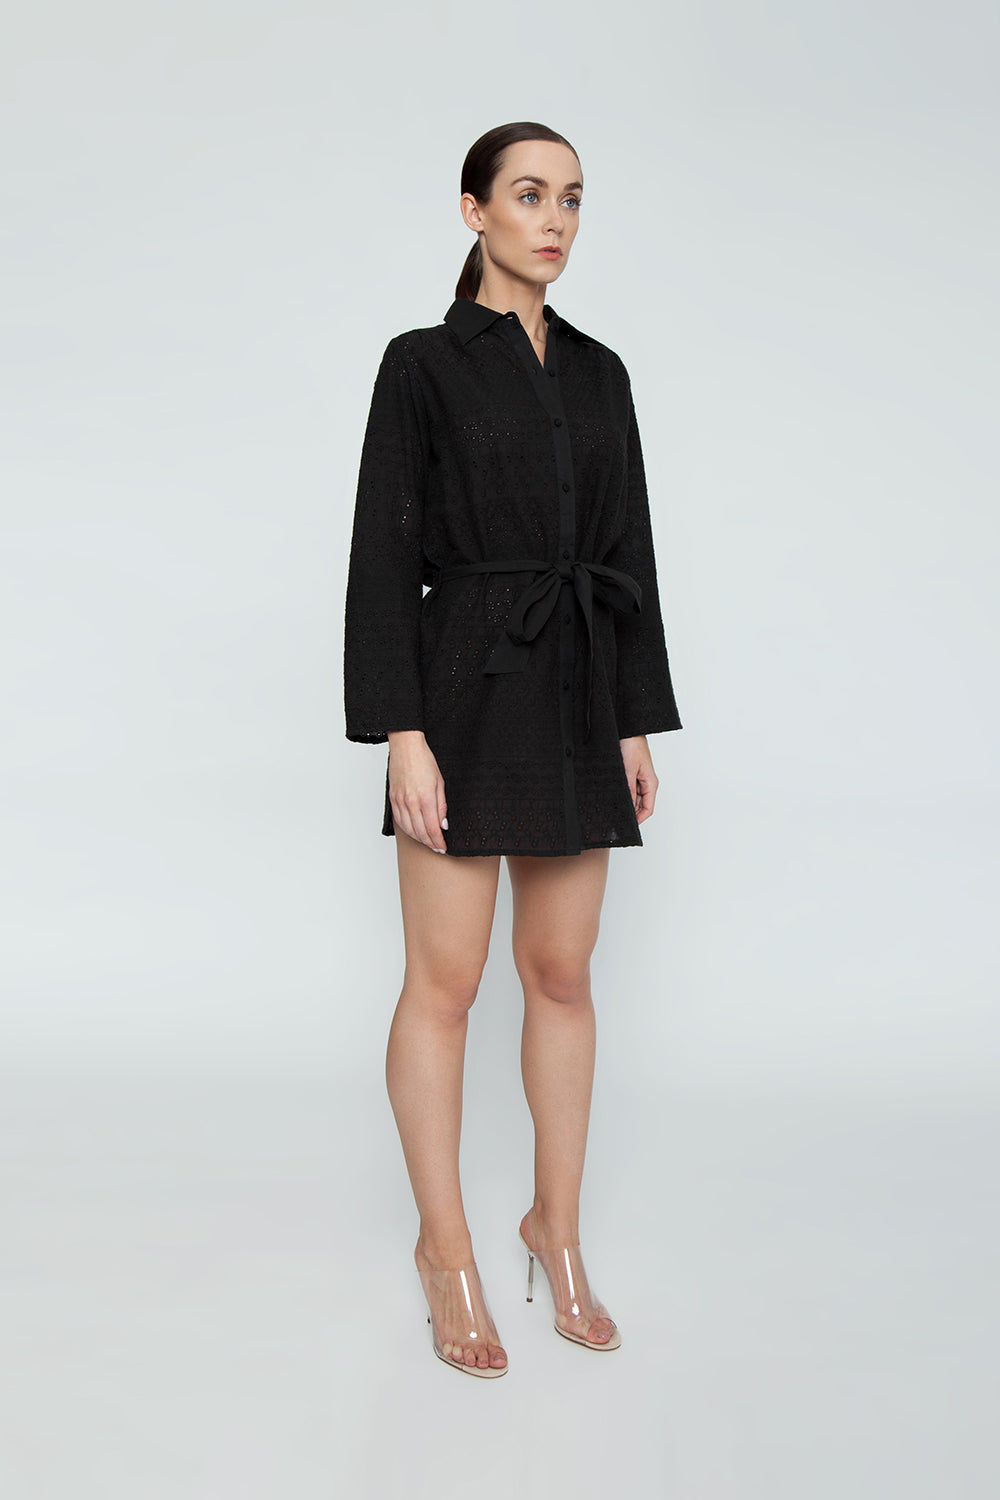 "AMITA NAITHANI Signature Eyelet Big Shirt Dress - Black Dress | Black| Amita Naithani Signature Eyelet Big Shirt Dress - Black. Features:  All Over Stripe Eyelet Button Front w/ Spread Collar  Pocket w/ Side Slit Dolphin Hem About 32"" from hips to hem  Imported 100% Cotton Machine Wash Side View"